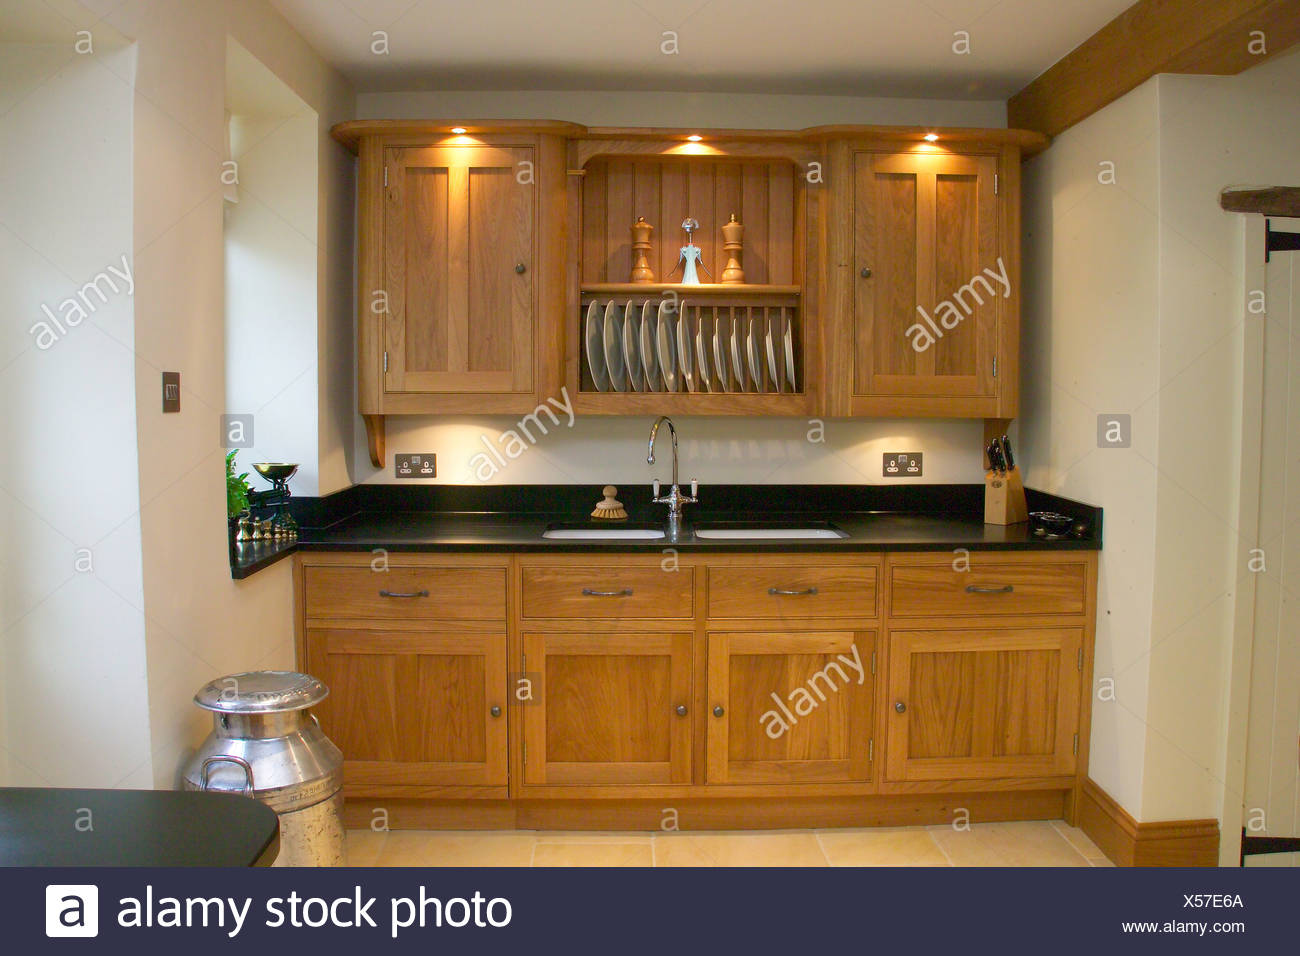 https www alamy com lighting above wooden kitchen cupboards with built in sink in modern kitchen image278603986 html